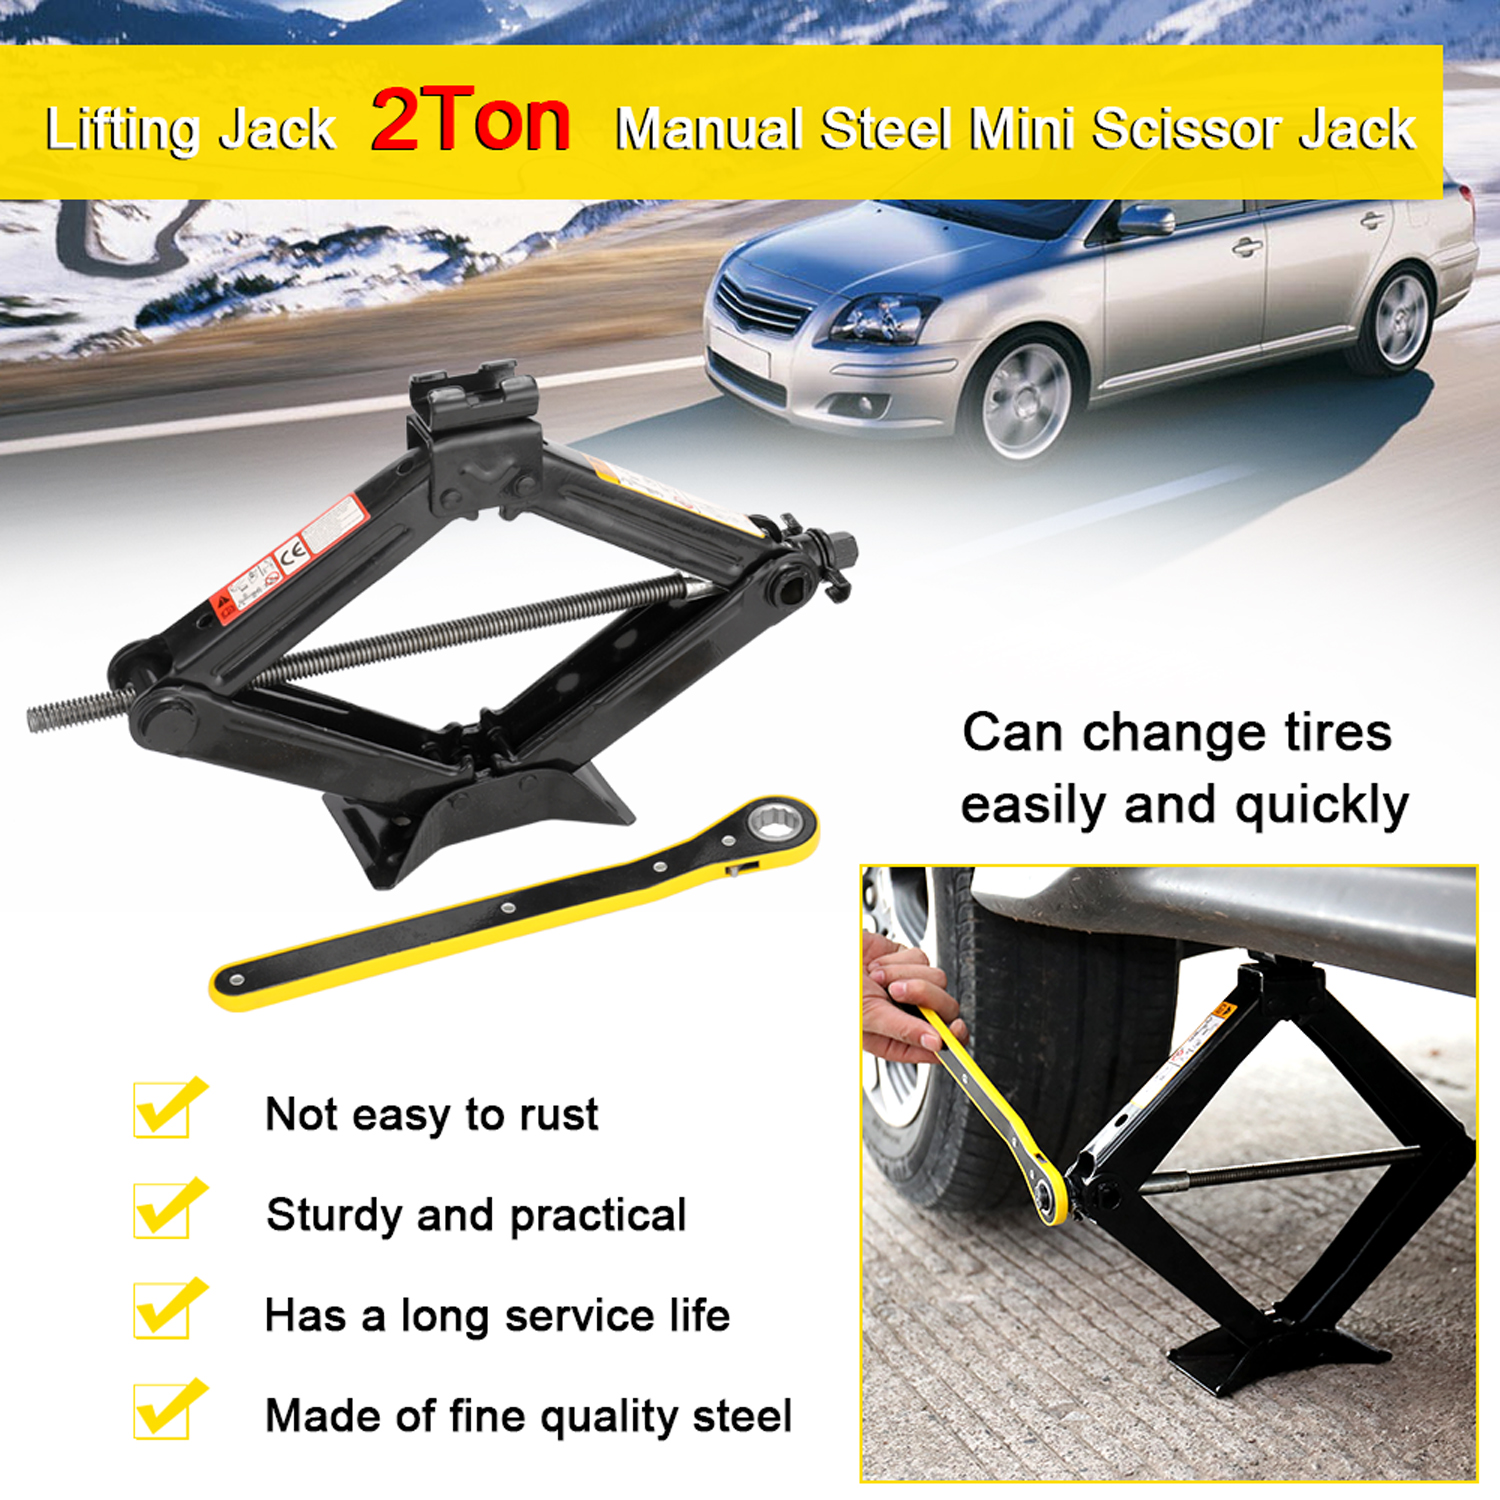 2T Mini Scissor Jack Manual Lifting Jacks Car Steel 2 Ton Black Lifting Jack With 17mm Ratchet Wrench For Auto Tire Repair